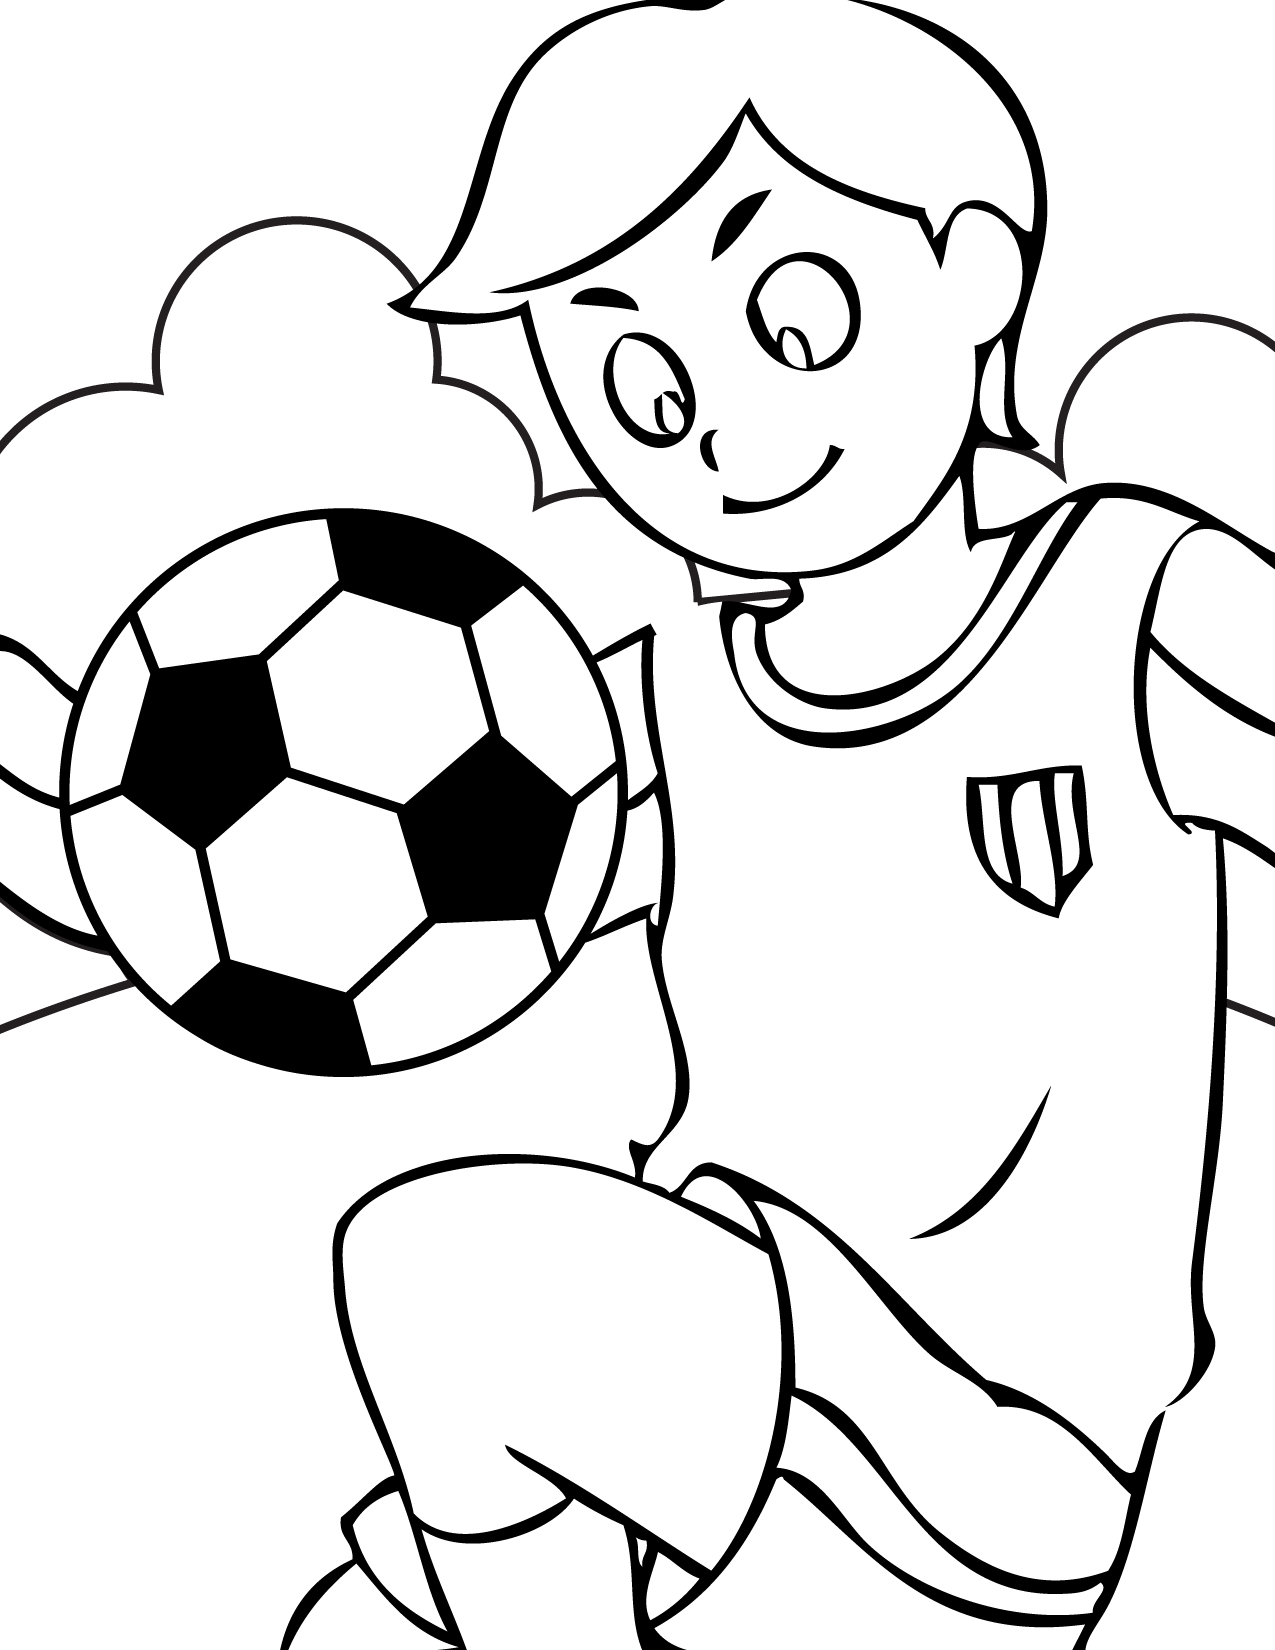 1275x1650 Coloring Pages For Boys Sports Download